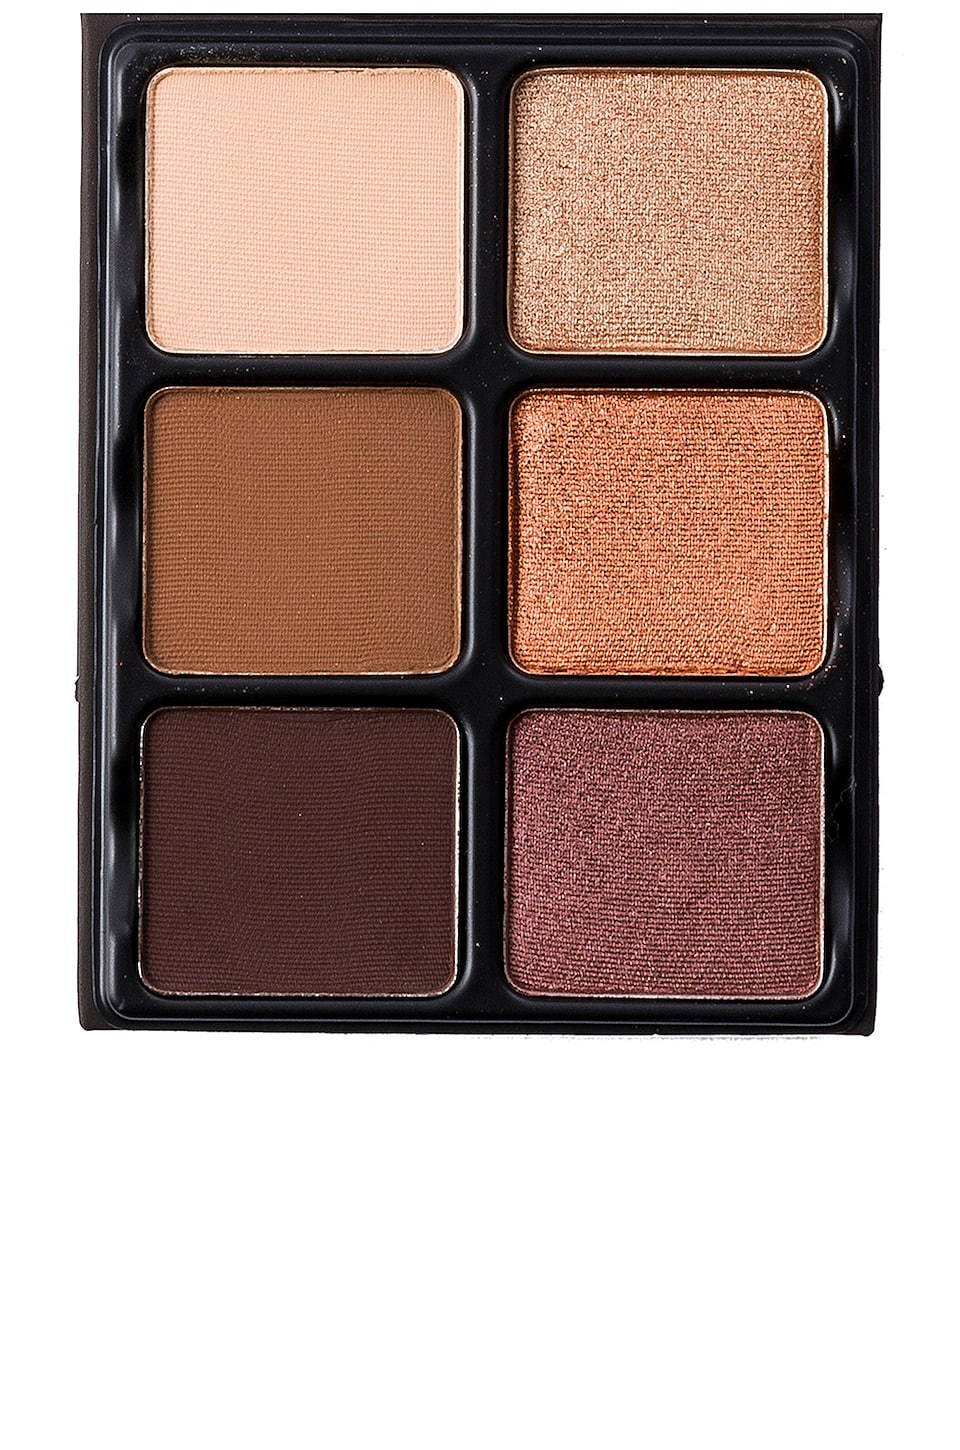 Theory II Eyeshadow Palette